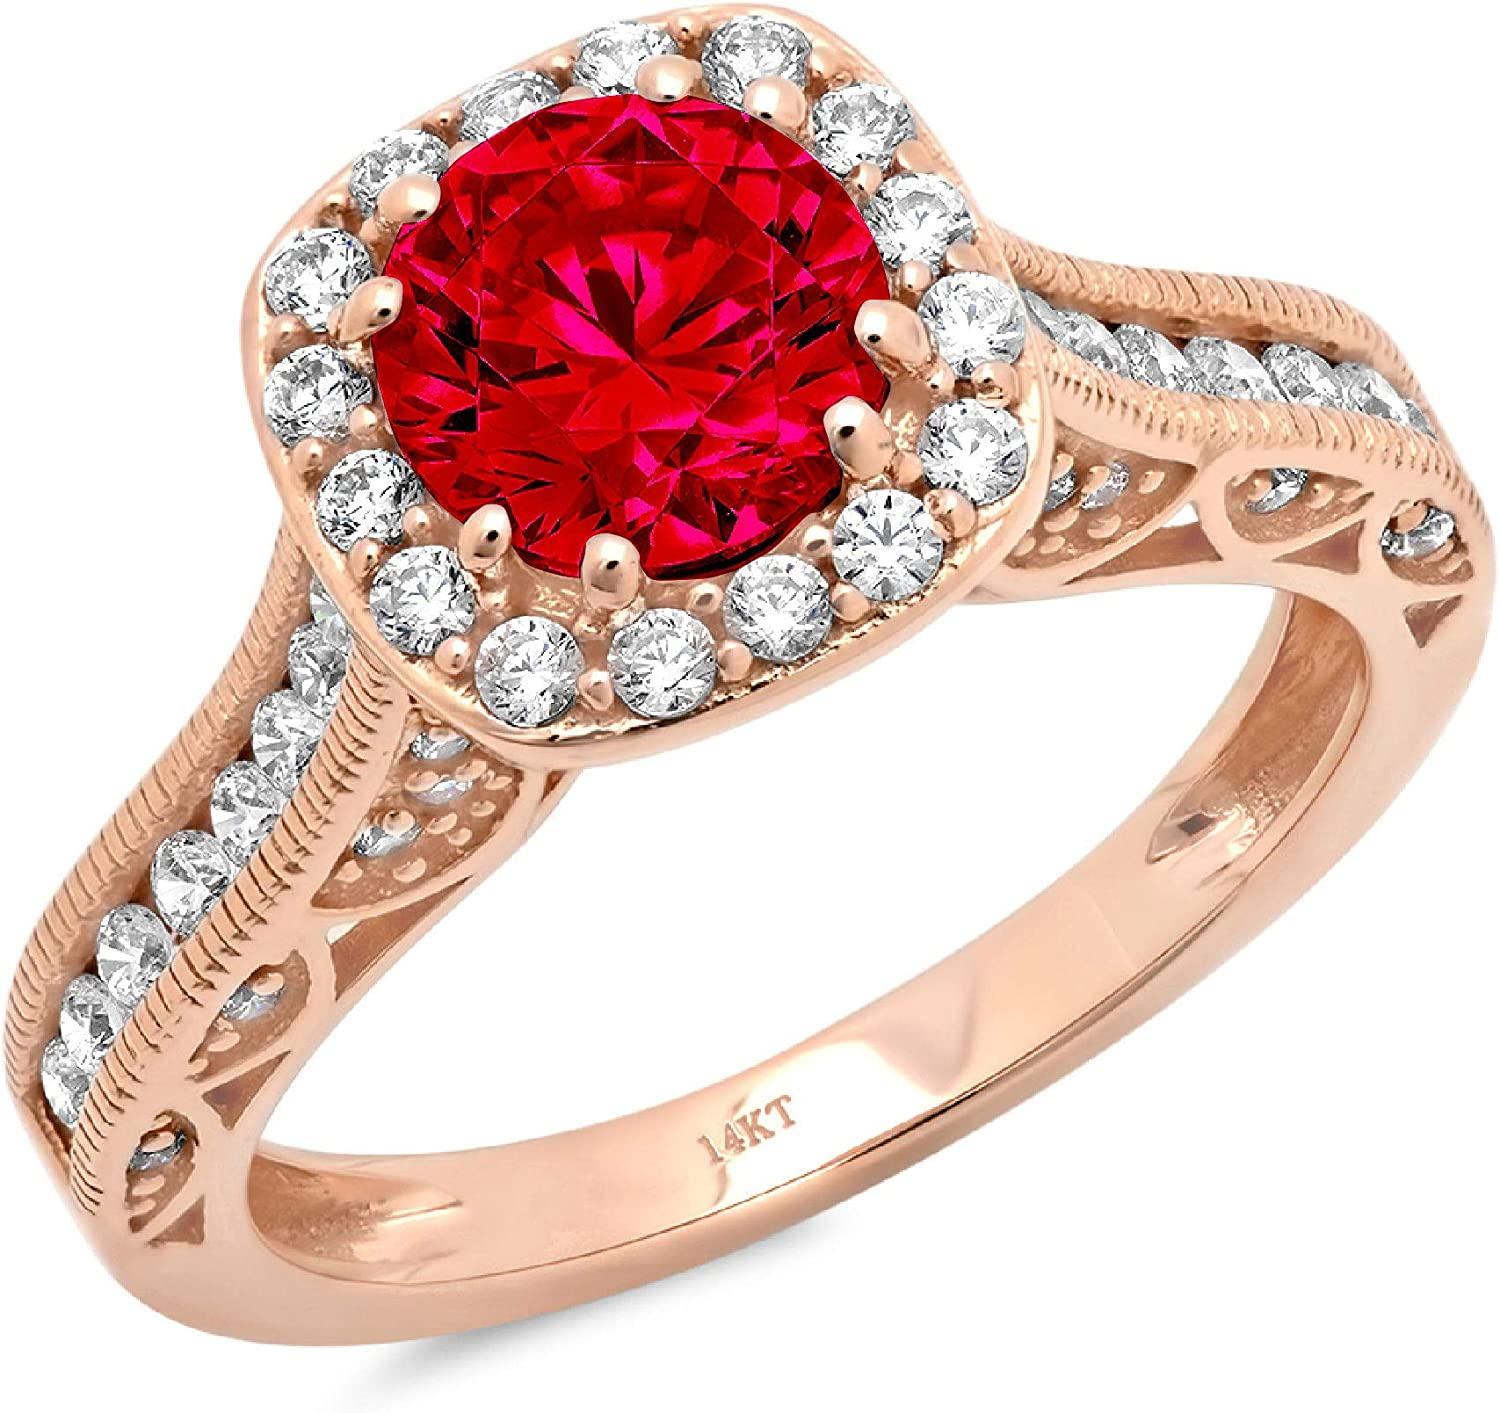 2 ct Brilliant Round Cut Solitaire accent Halo Stunning Genuine Flawless Simulated Pink Tourmaline Modern Promise Statement Designer Ring 14k Rose Gold